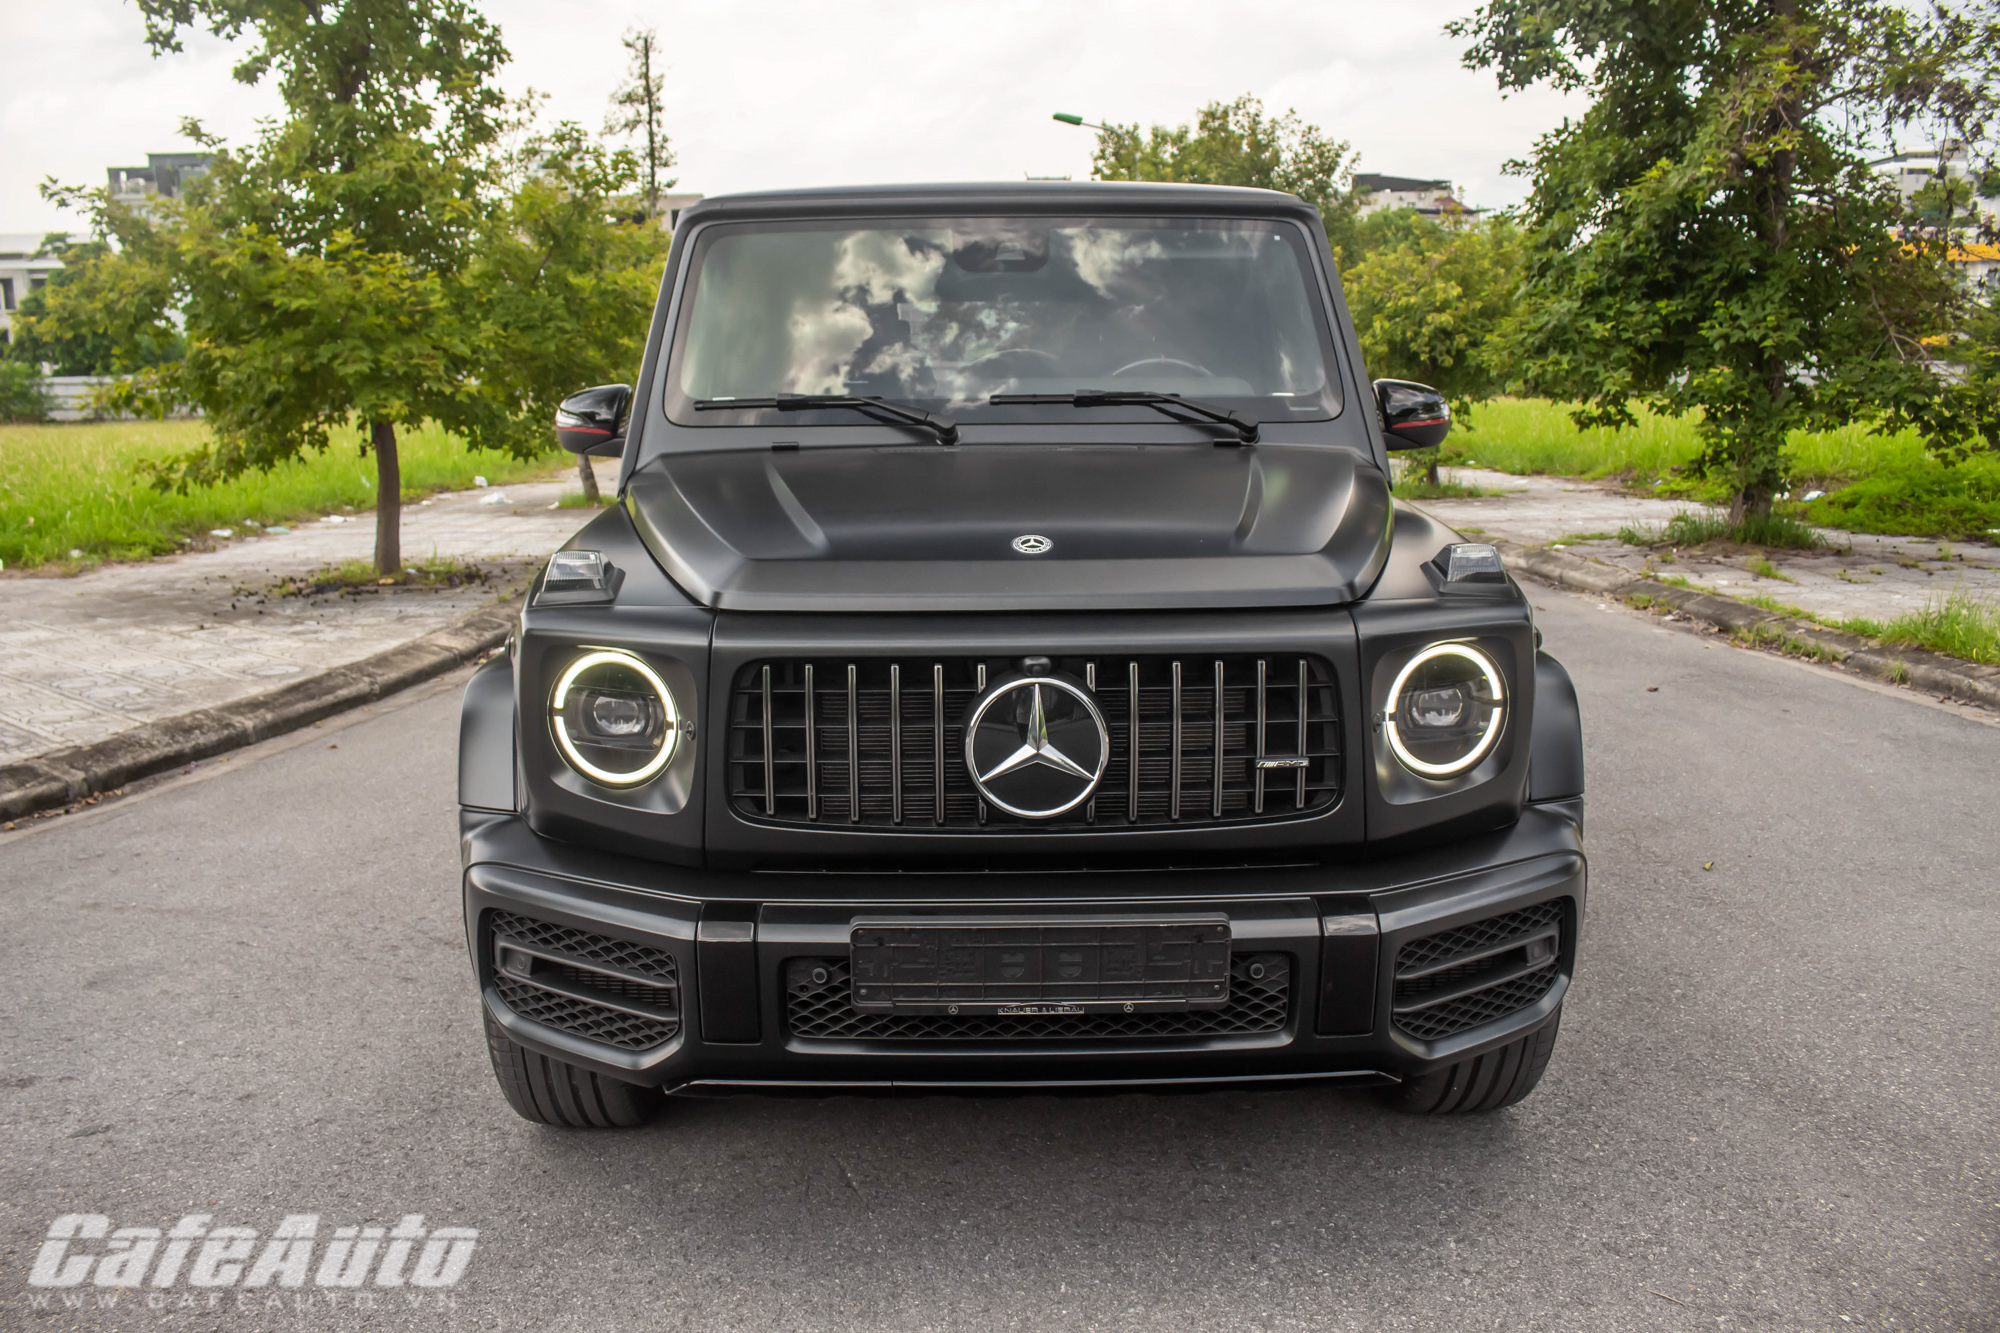 MercedesG63TrailPackage-cafeautovn-24